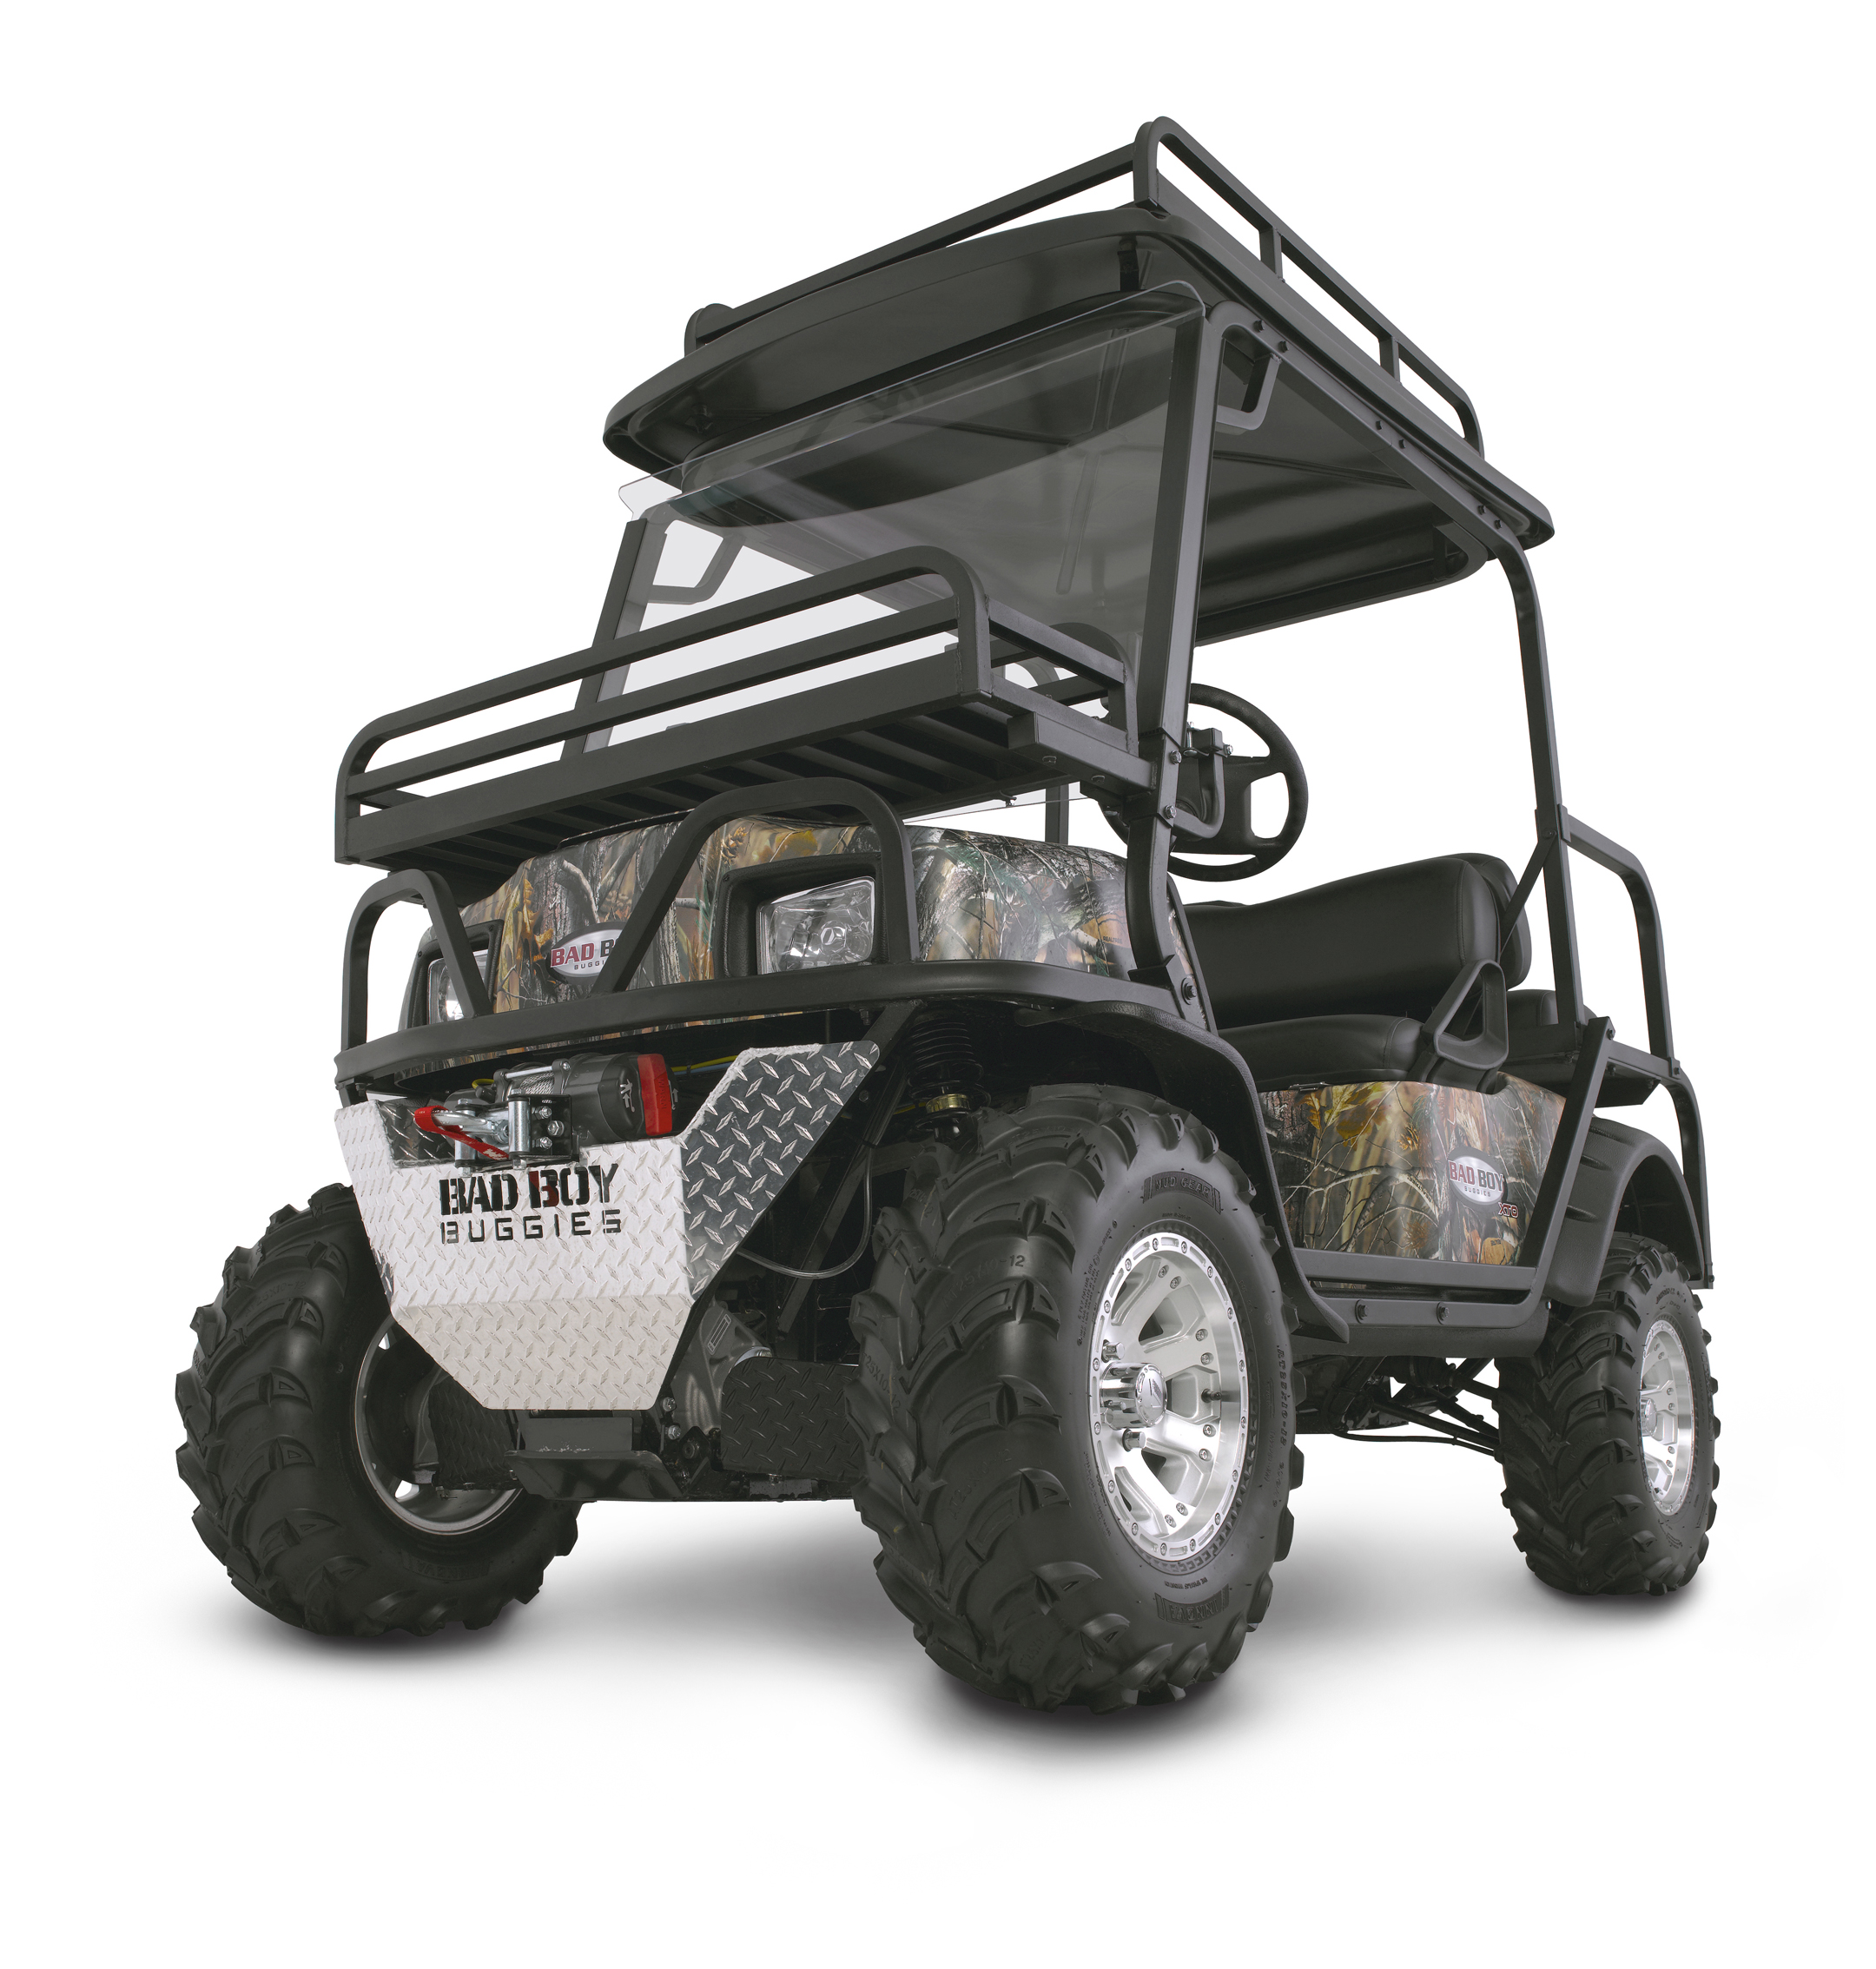 textron specialized vehicles recalls bad boy off road utility  bad boy xto off road utility vehicle